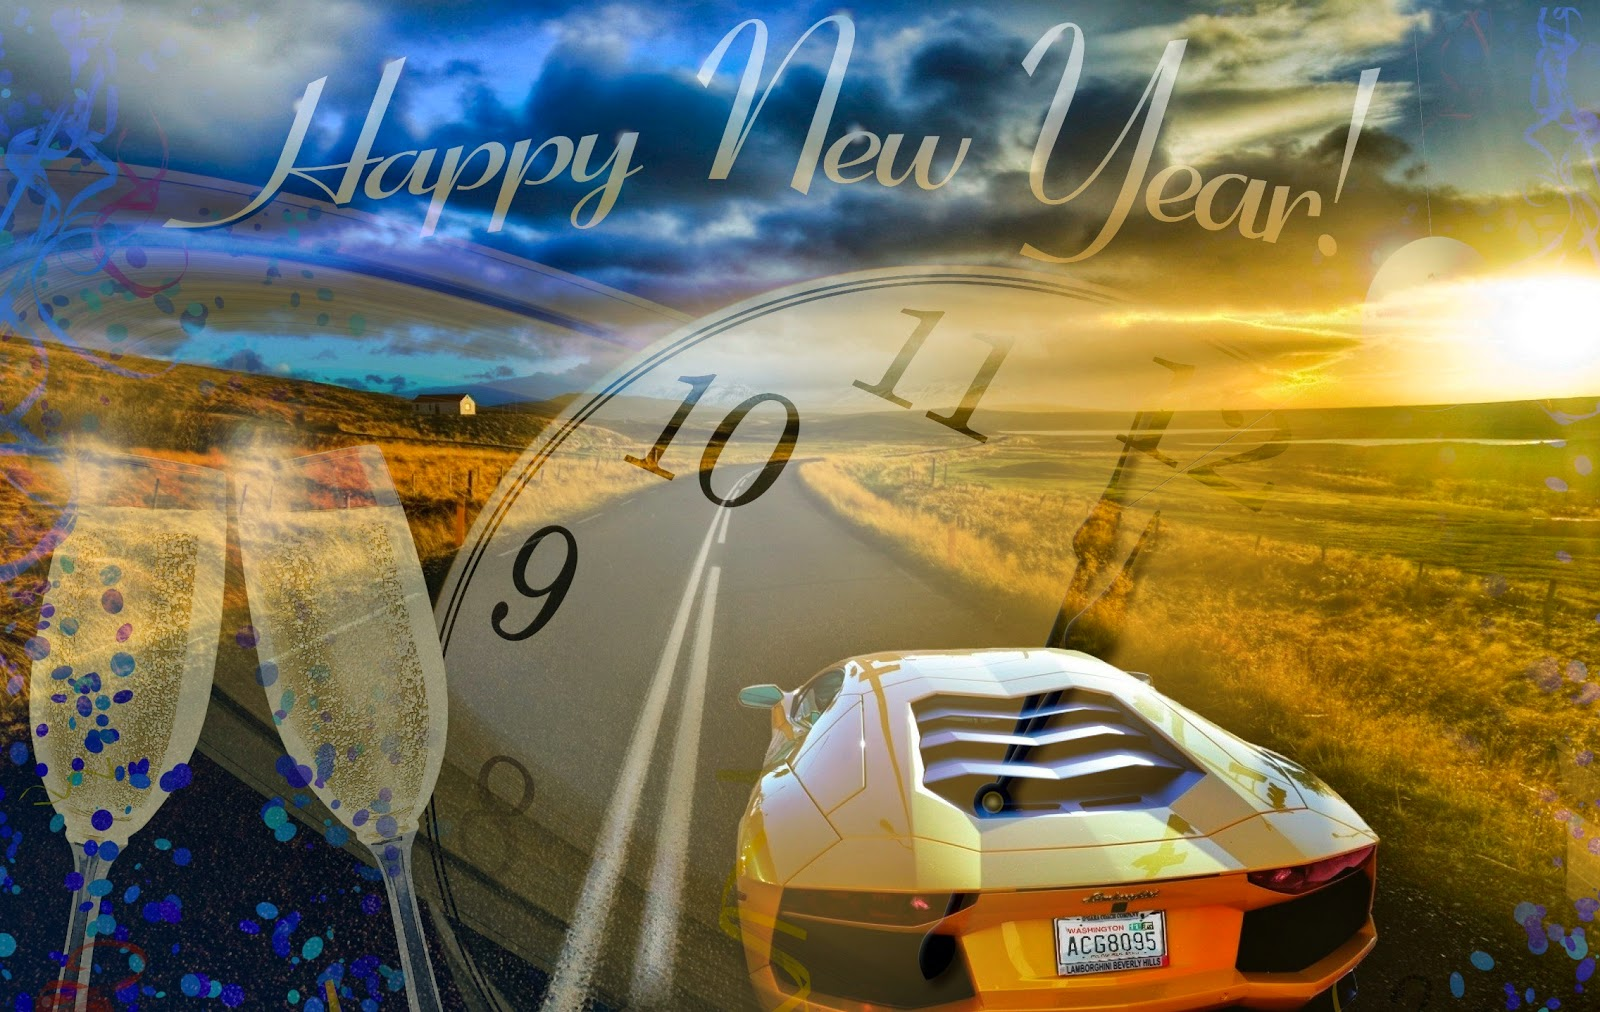 http://jhelchemy.blogspot.com/2015/01/a-new-years-drive.html